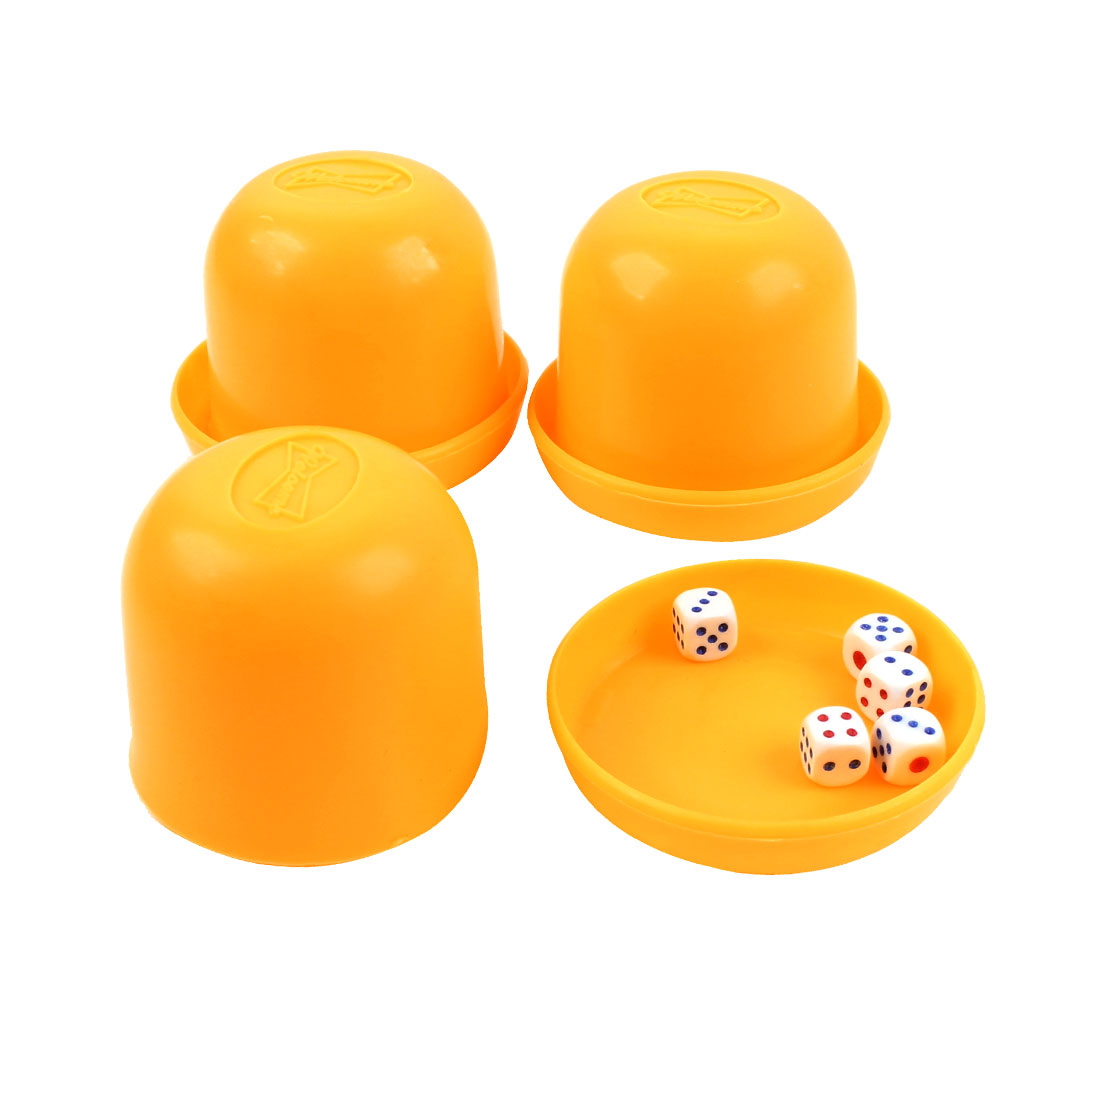 KTV Pub Game Toy Plastic Holder Shaking Cup Box Yellow 3PCS w Dices